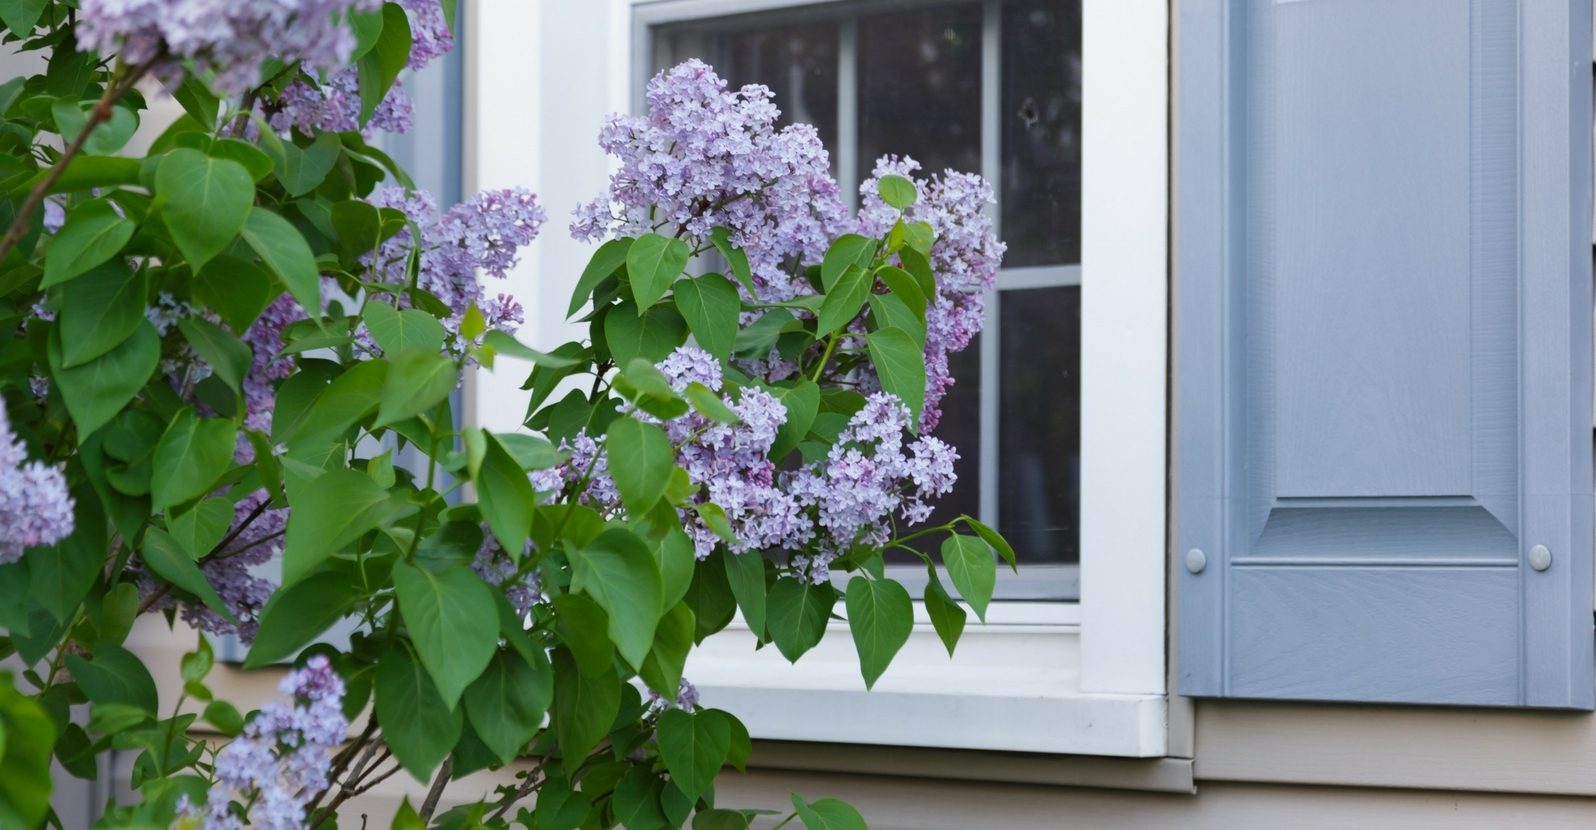 Toughen Up Your Landscape: 10 Shrubs That Can Handle Harsh Conditions